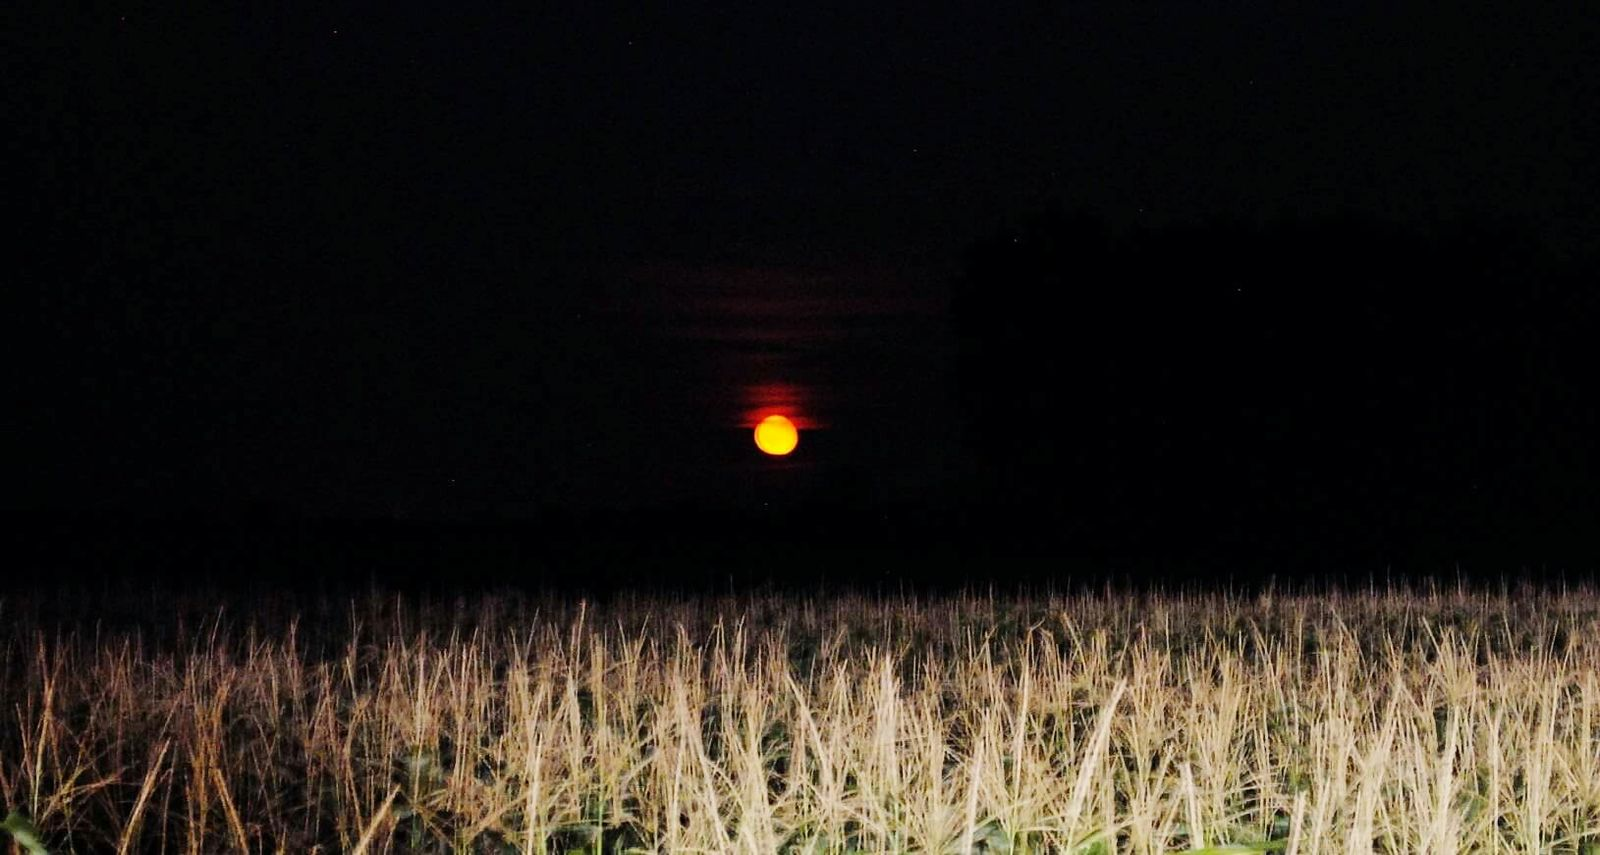 Moon Moonlight Red Red Moon Night Fields Sky Darkness Nikonphotography Nikond3000 Photography Black Beutiful  Nature Nature Beauty